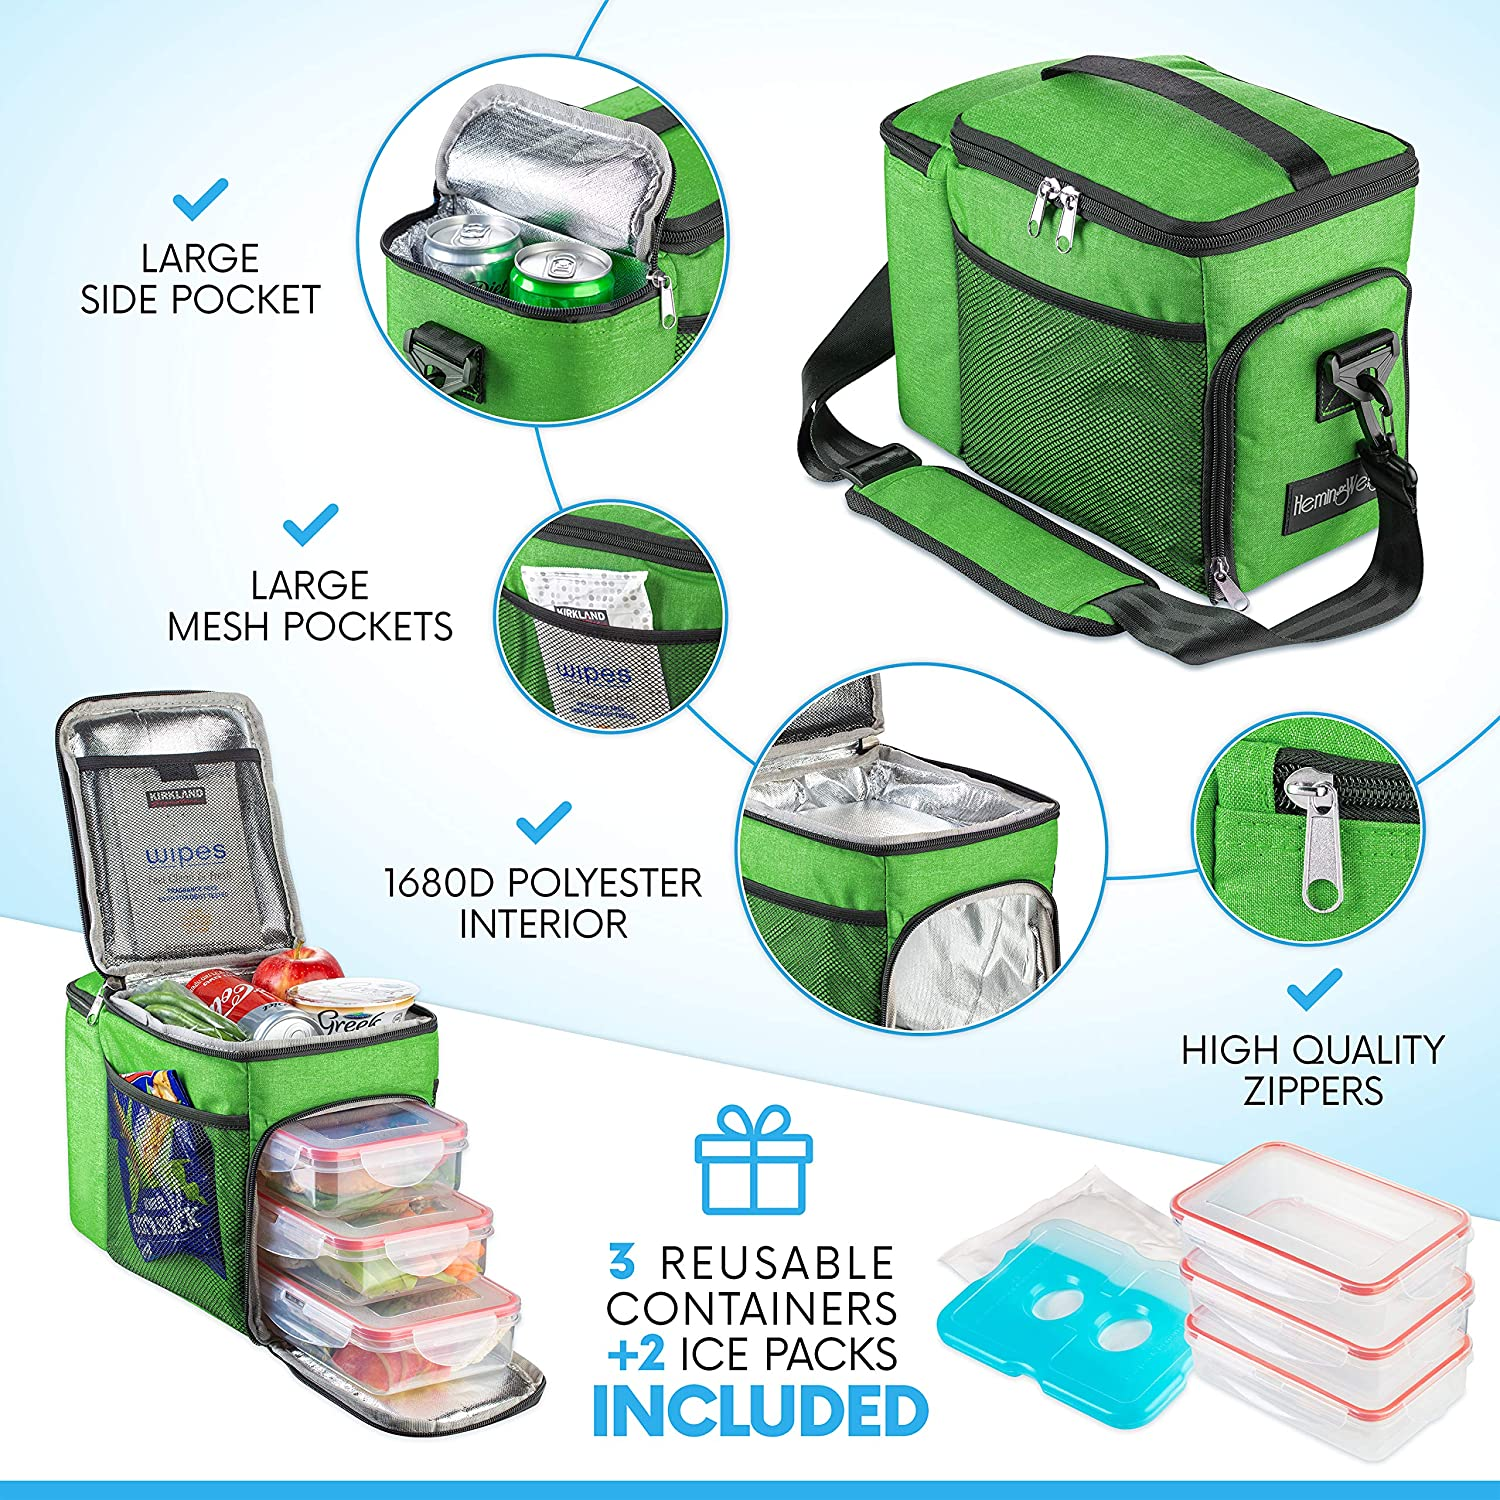 HemingWeigh Reusable Insulated Lunch Box - Durable Lunch Bag Cooler w/Spacious Storage Compartments - Includes 3 Food Storage Containers & Ice Pack (Light Green)